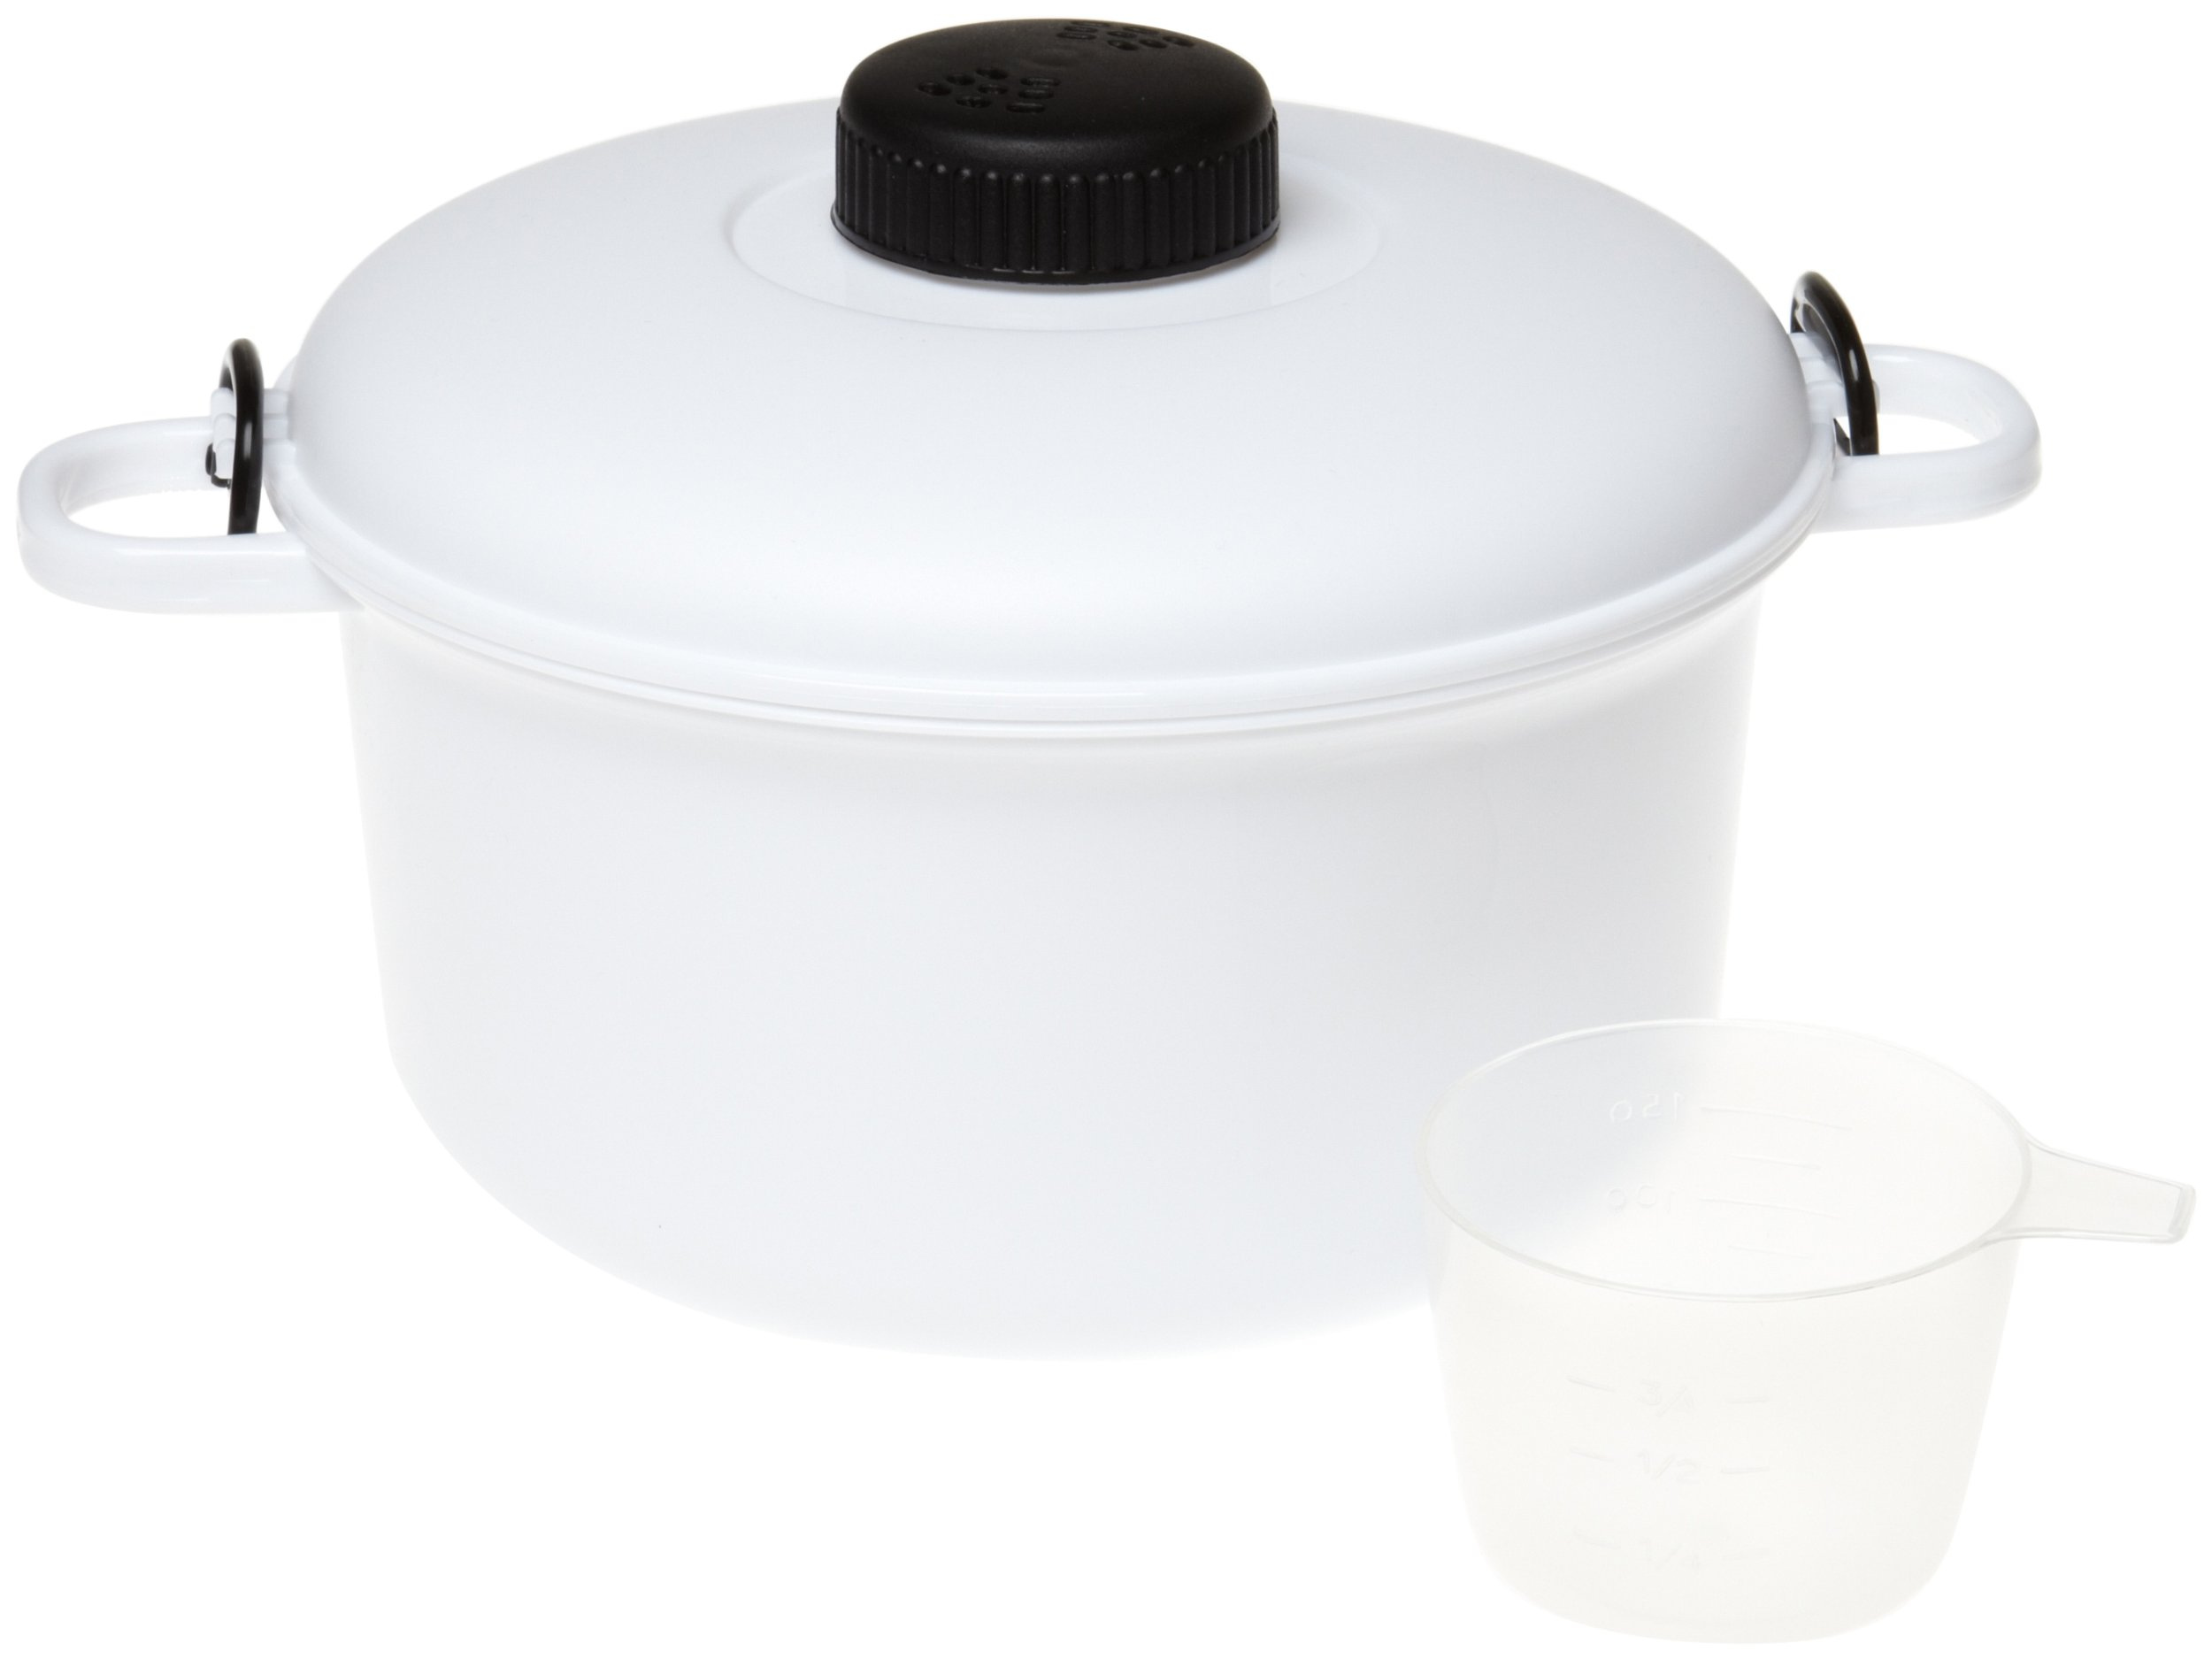 Handy Gourmet Micromaster Kitchen Microwave Pressure Cooker - White by Handy Gourmet